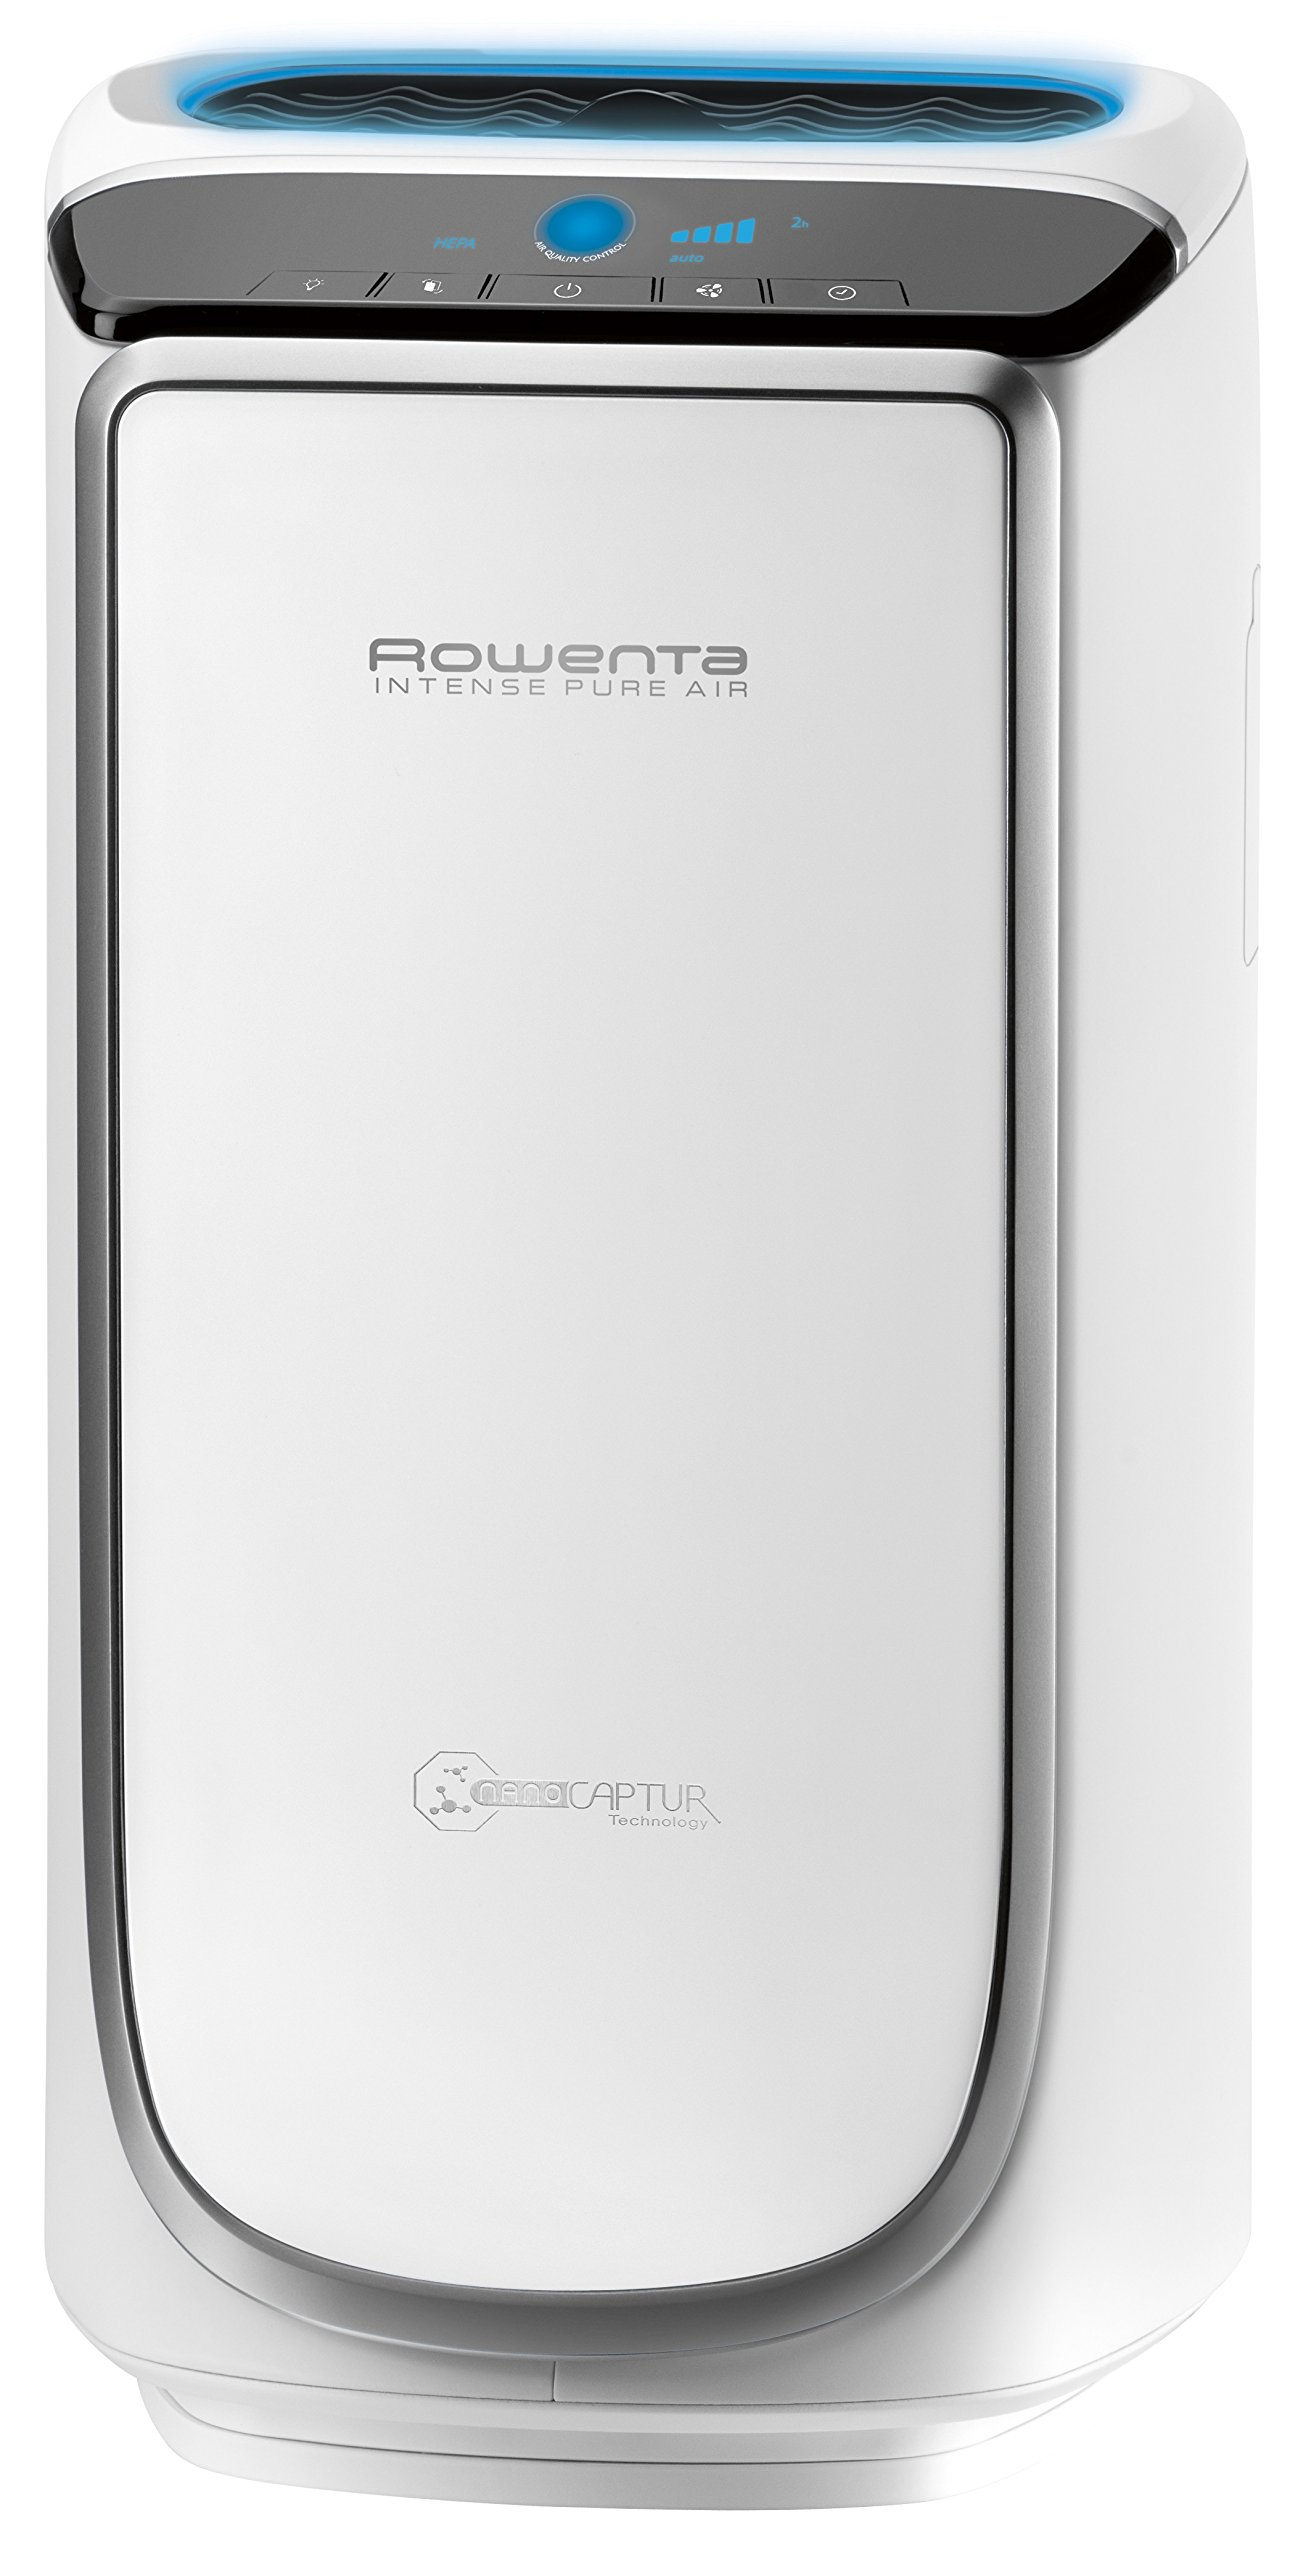 Rowenta PU4020 Intense Pure Air 400-Square Feet Air Purifier with Pollution Sensors and 4-Filters Including HEPA Filter and Formaldehyde-Free Technology and Odor Eliminator, 21-Inch, White